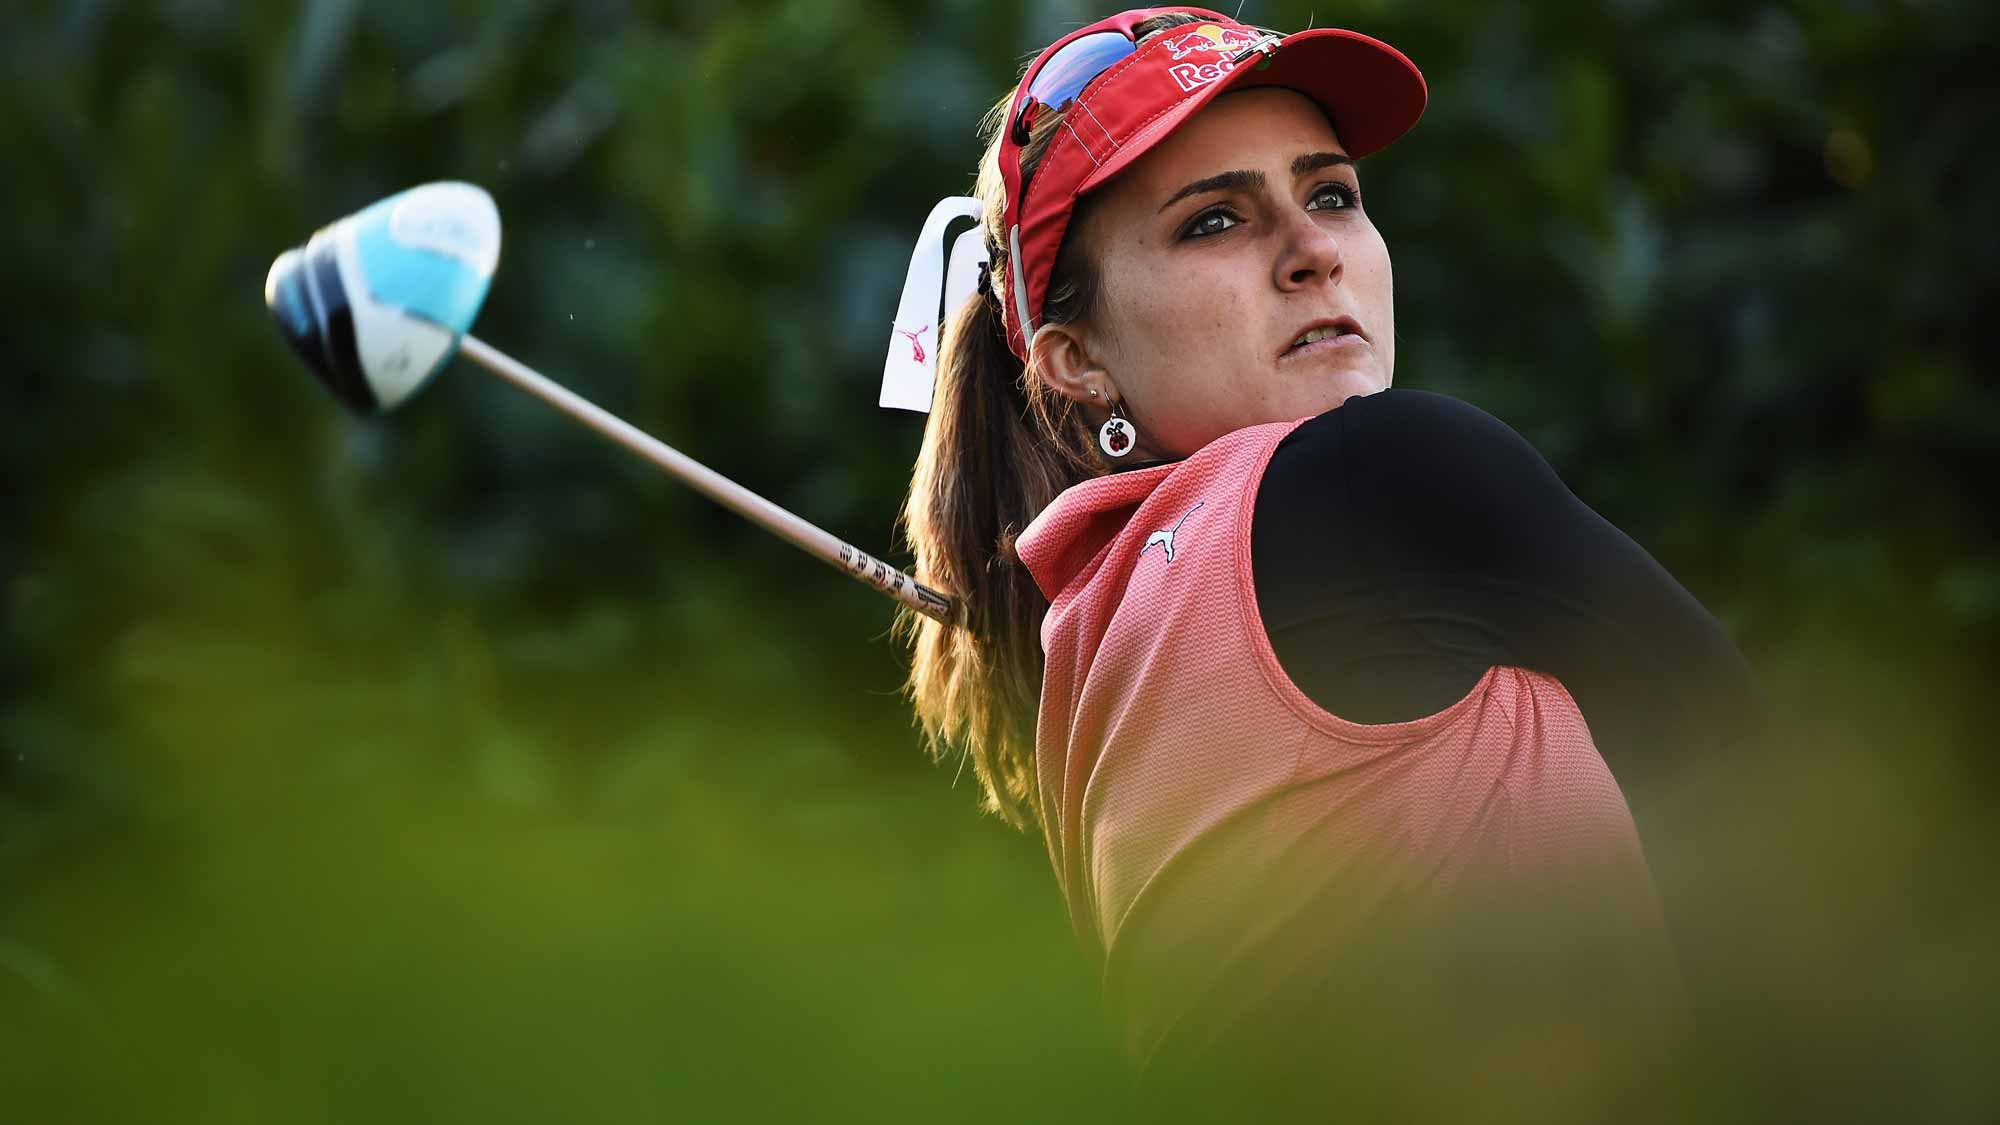 Lexi Thompson during the first round of the Evian Championship Golf